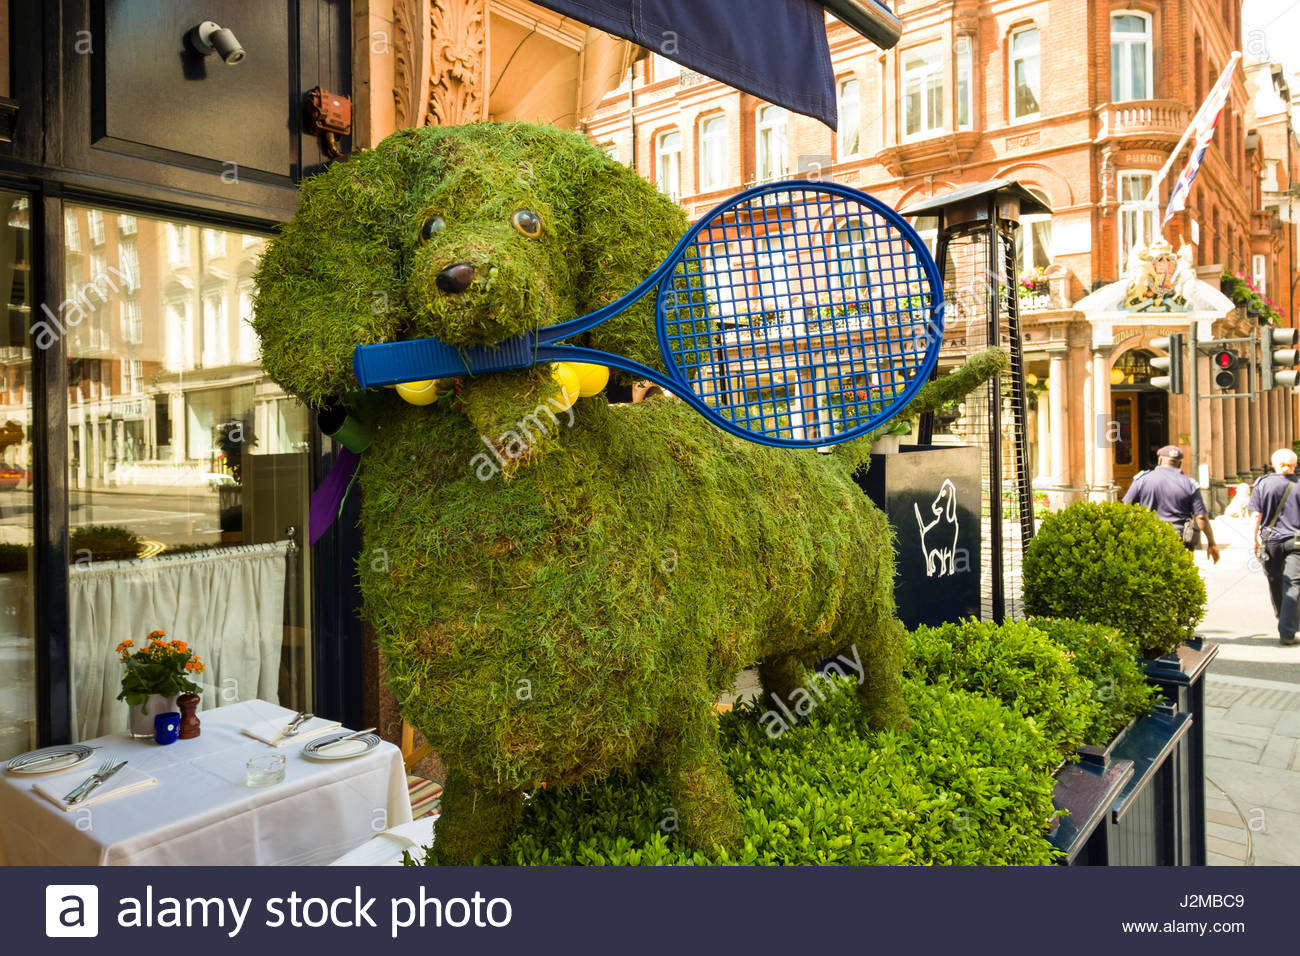 Topiary of dog with tennis racket in mouth outside of George private members club, Mount Street, Mayfair, City of - Stock Image